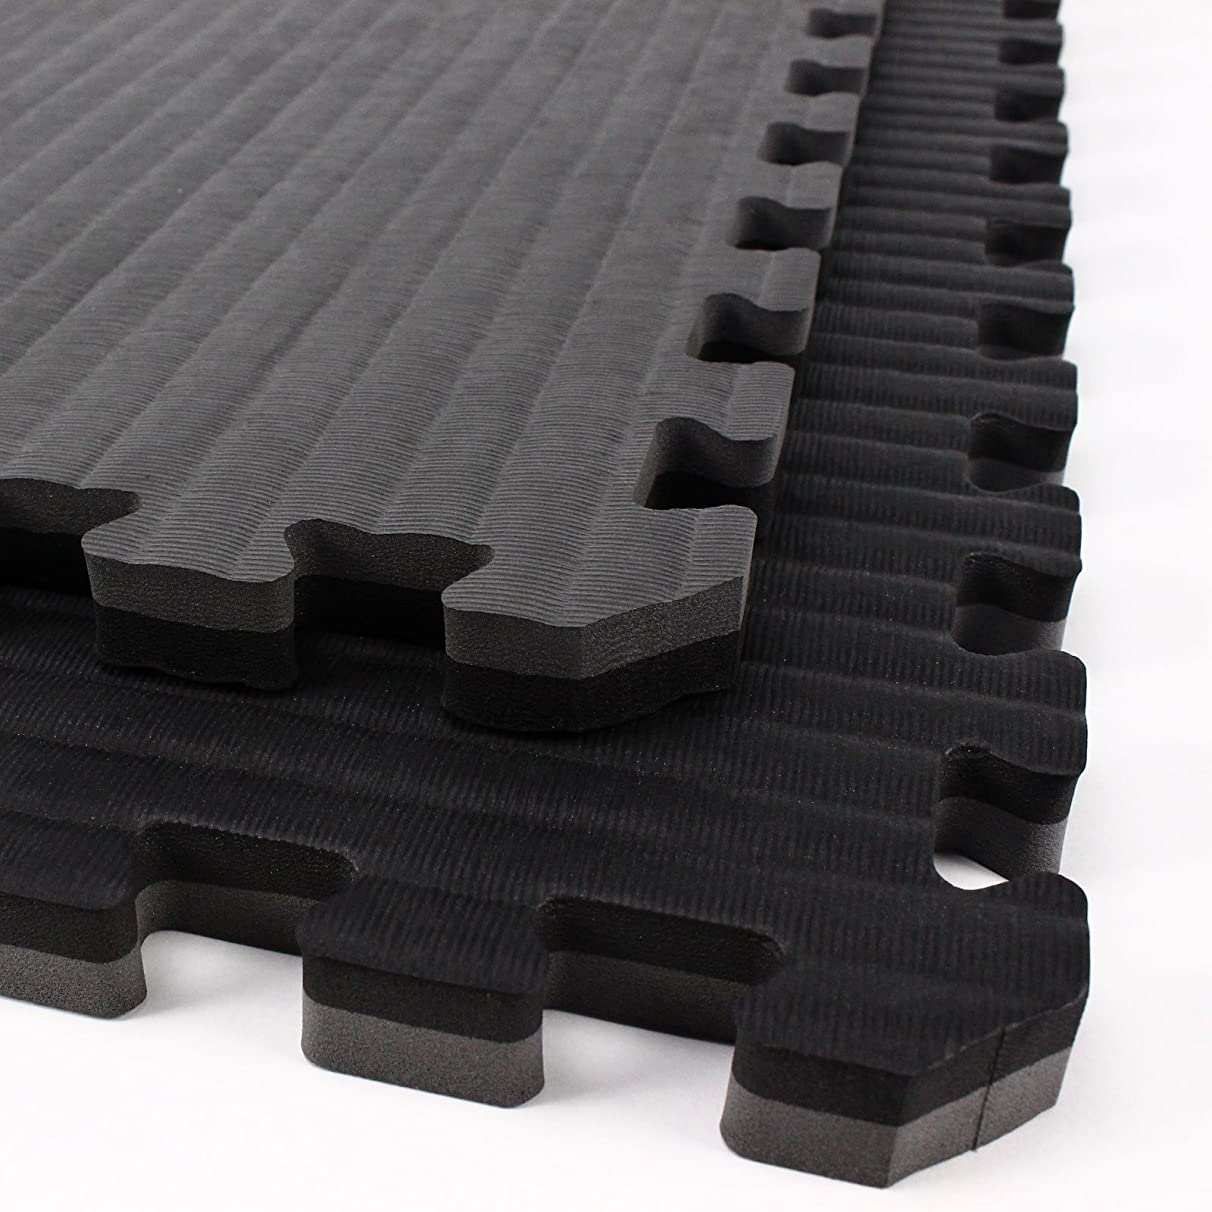 IncStores - Tatami Foam Tiles - Extra Thick mats Perfect for Martial Arts, MMA, Lightweight Home Gyms, p90x, Gymnastics, Yoga and Cardio